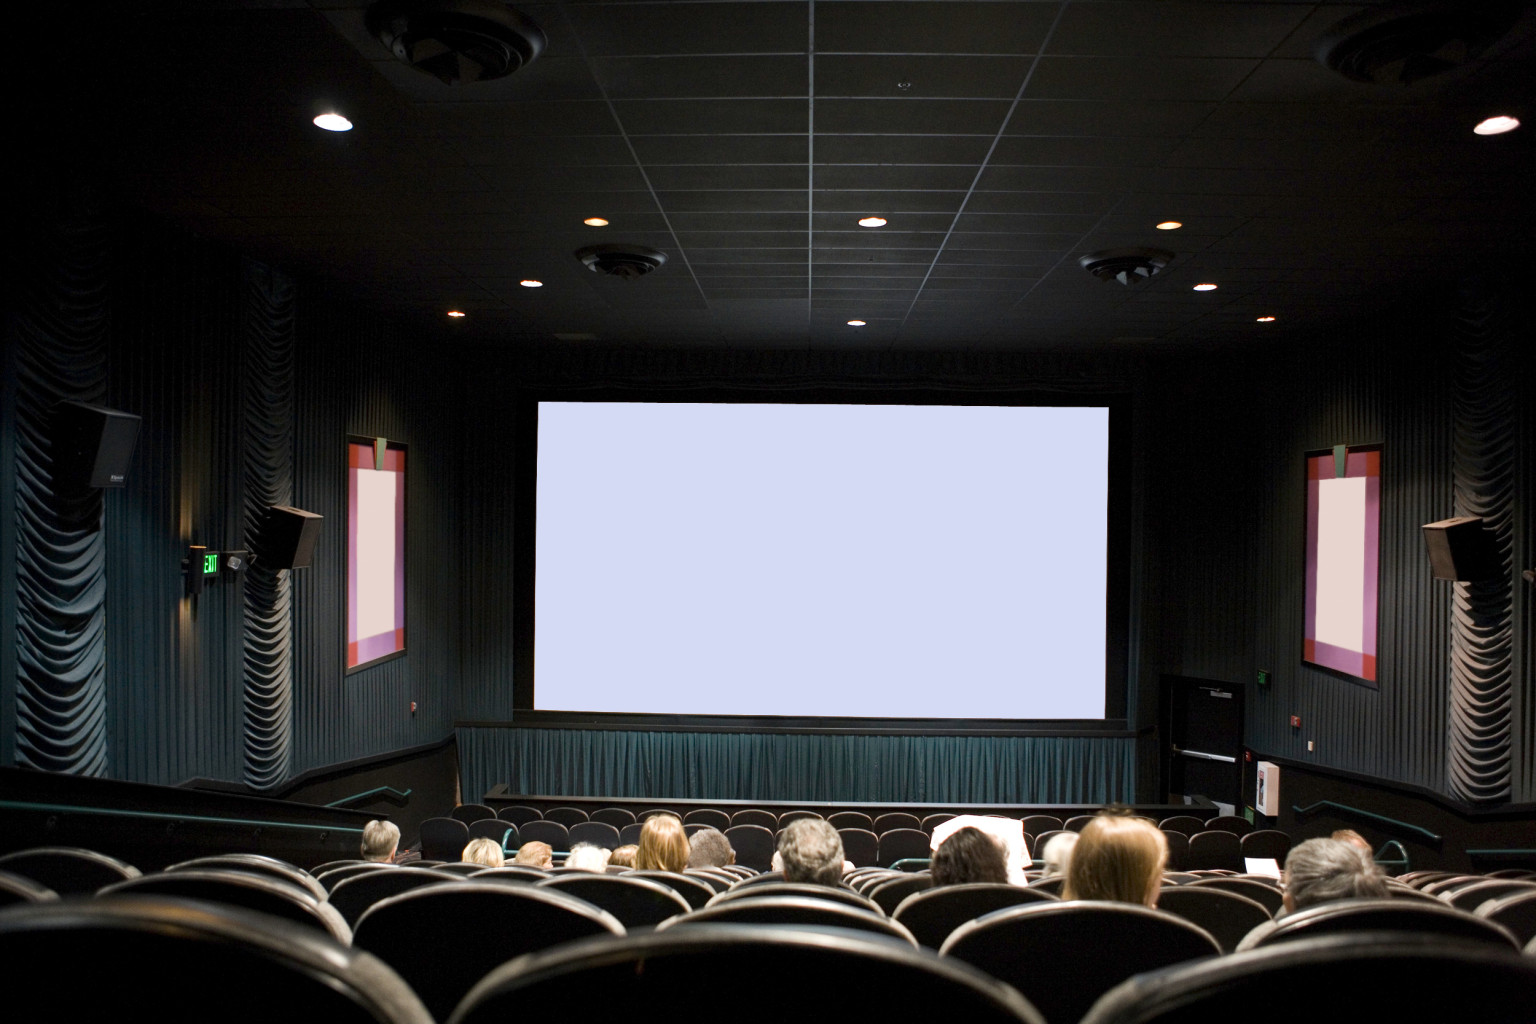 o-CROWDED-MOVIE-THEATER-facebook.jpg